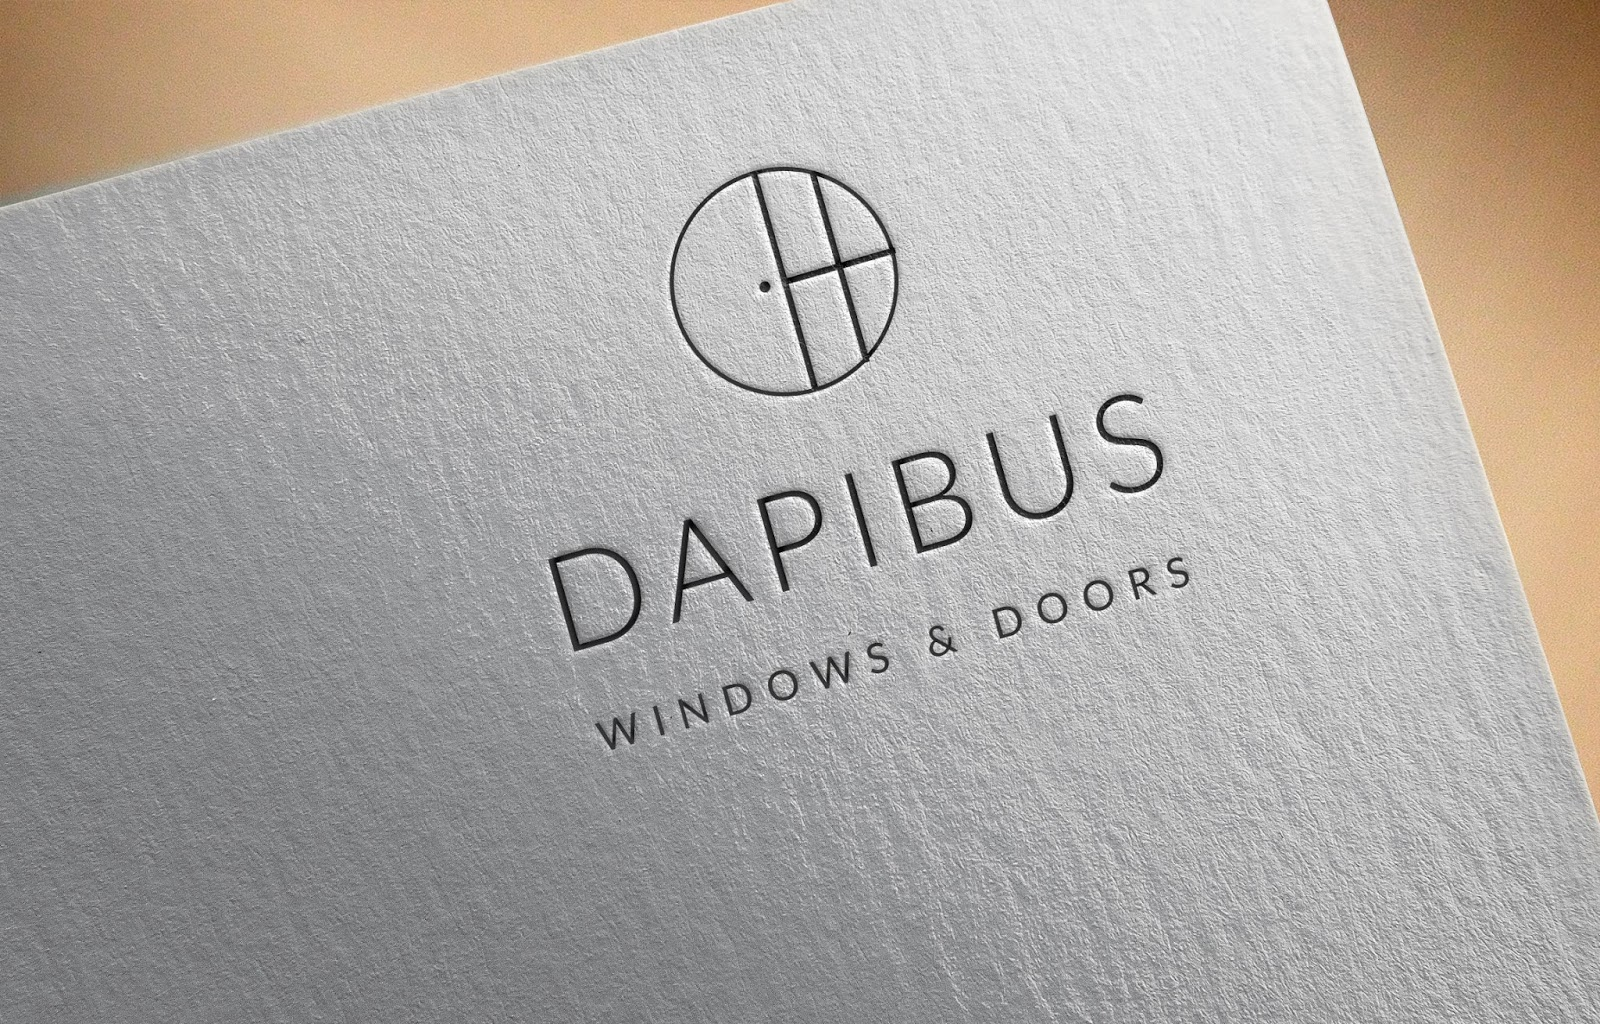 Windows & Doors Logo Idea